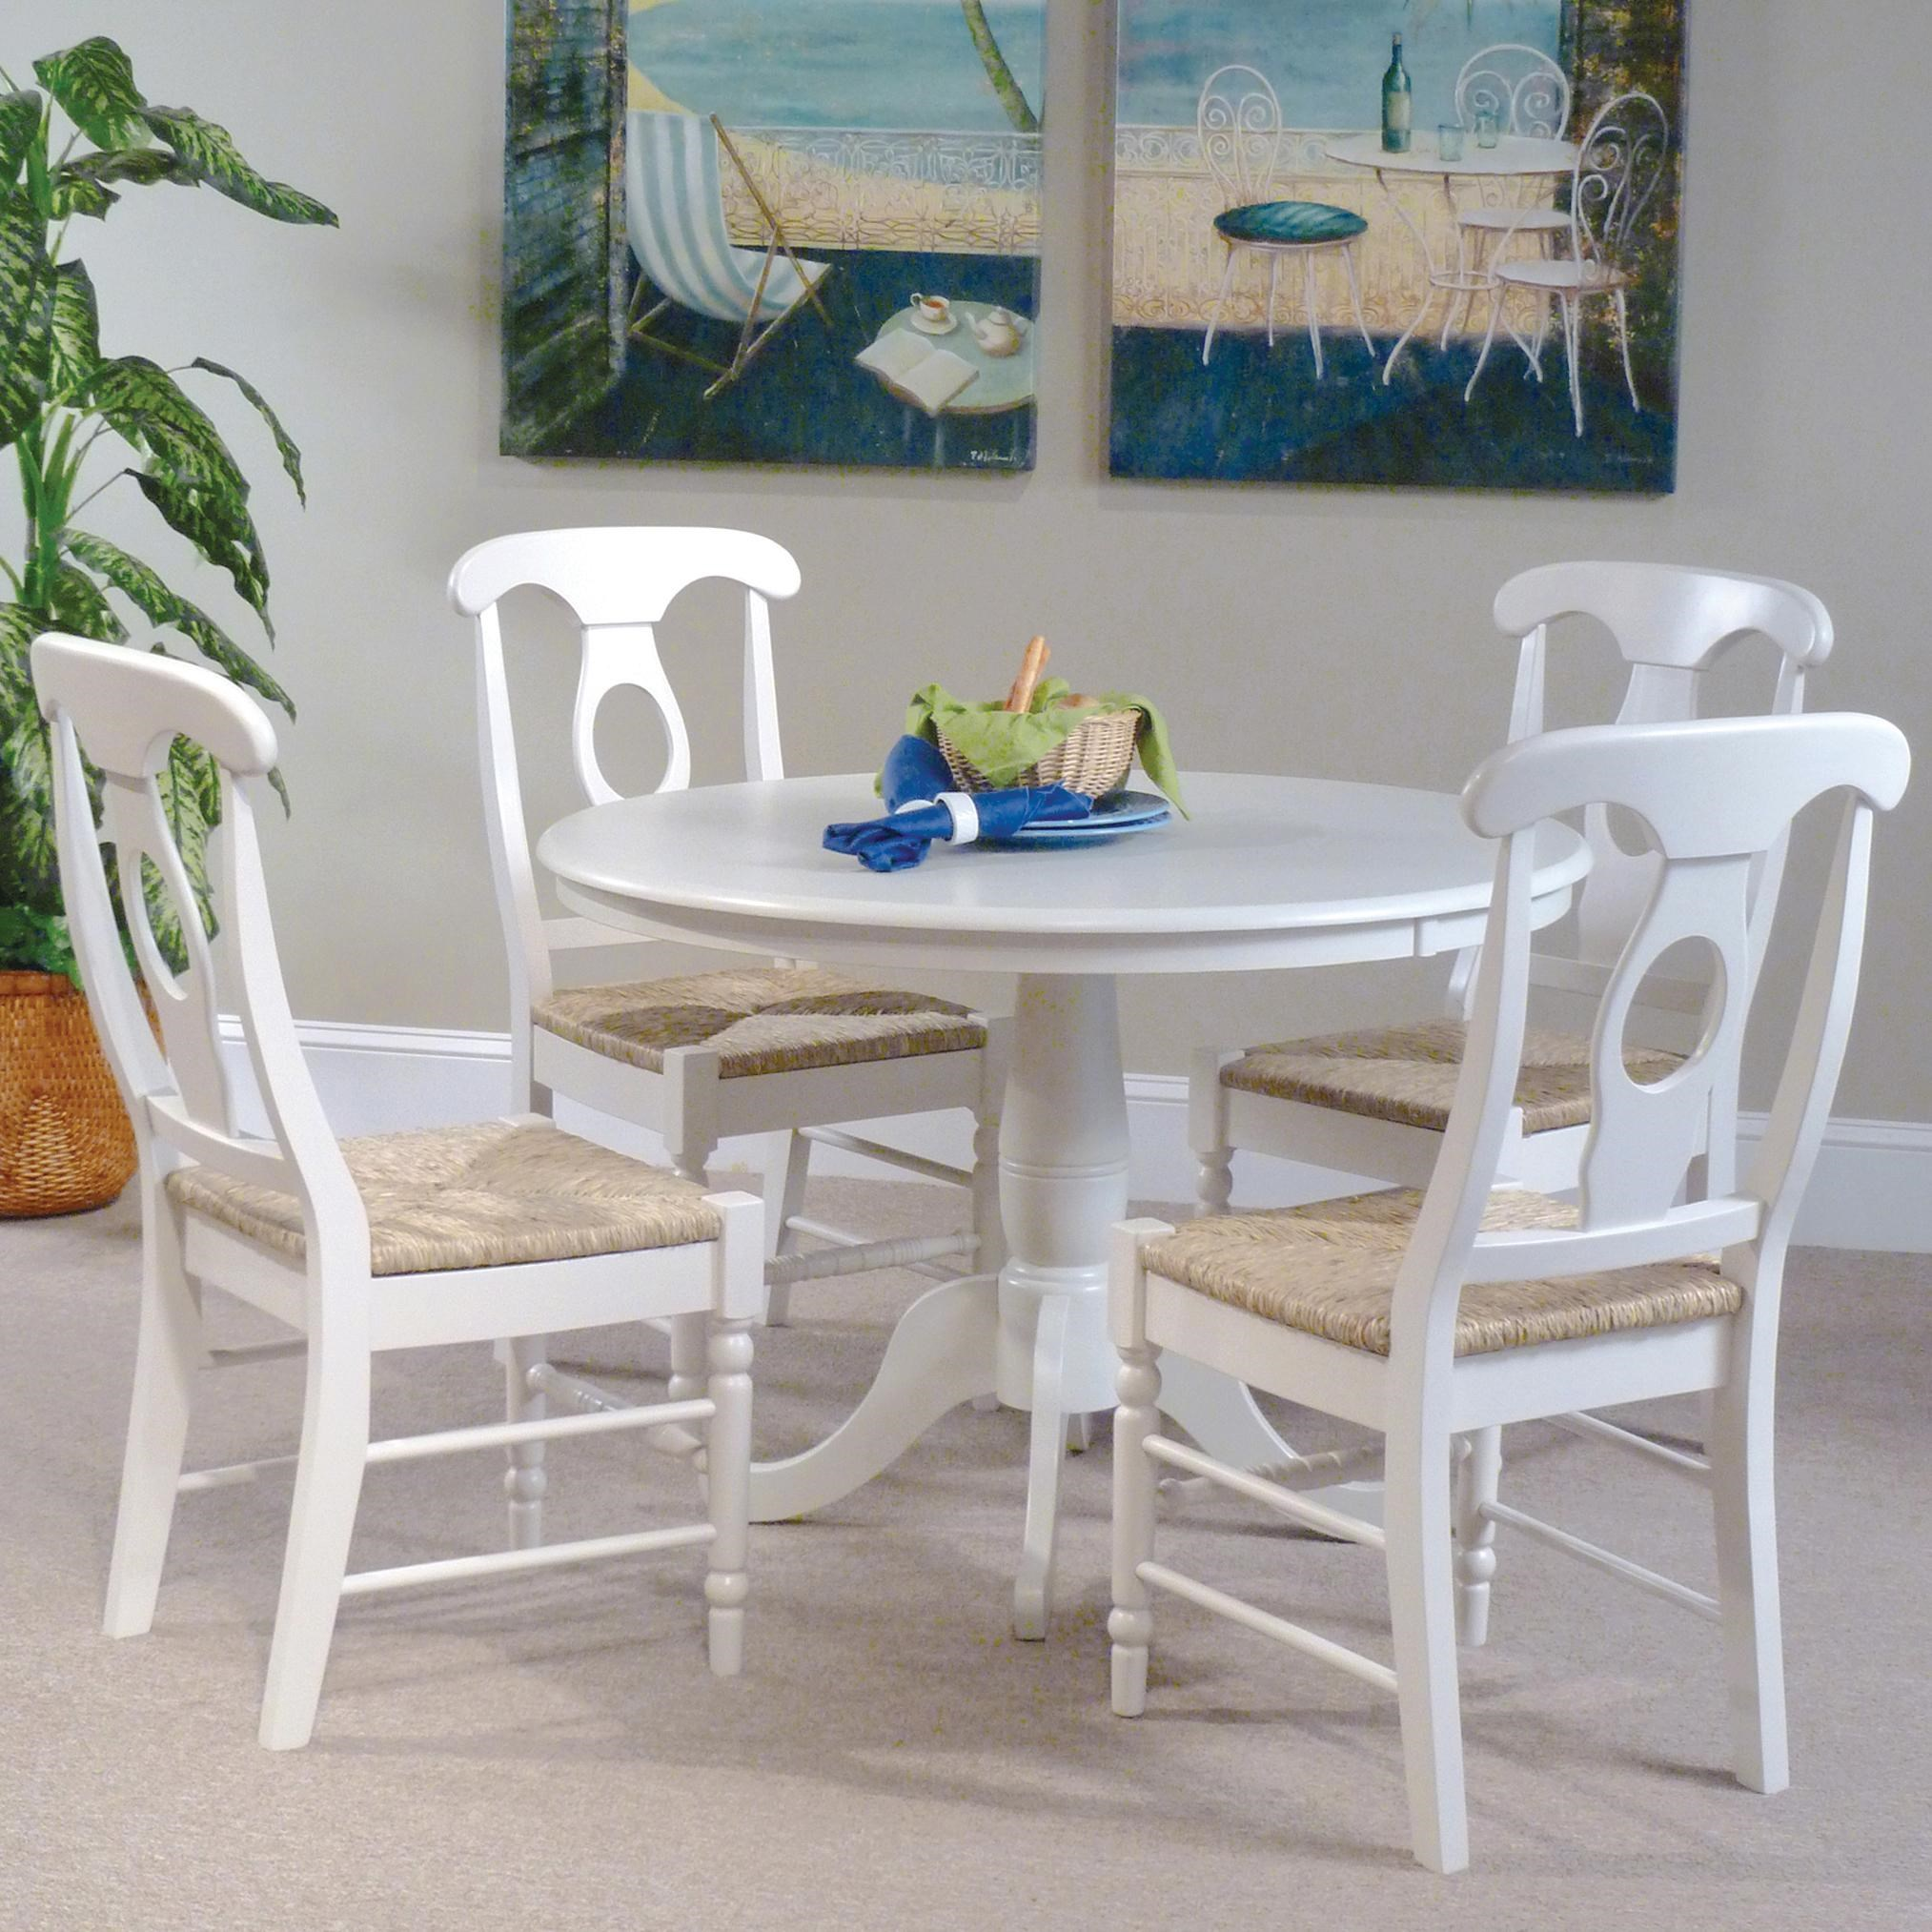 John Thomas Simply Linen 5-Piece Table and Side Chairs with White Finish  sc 1 st  Belfort Furniture & John Thomas Simply Linen 5-Piece Table and Side Chairs with White ...